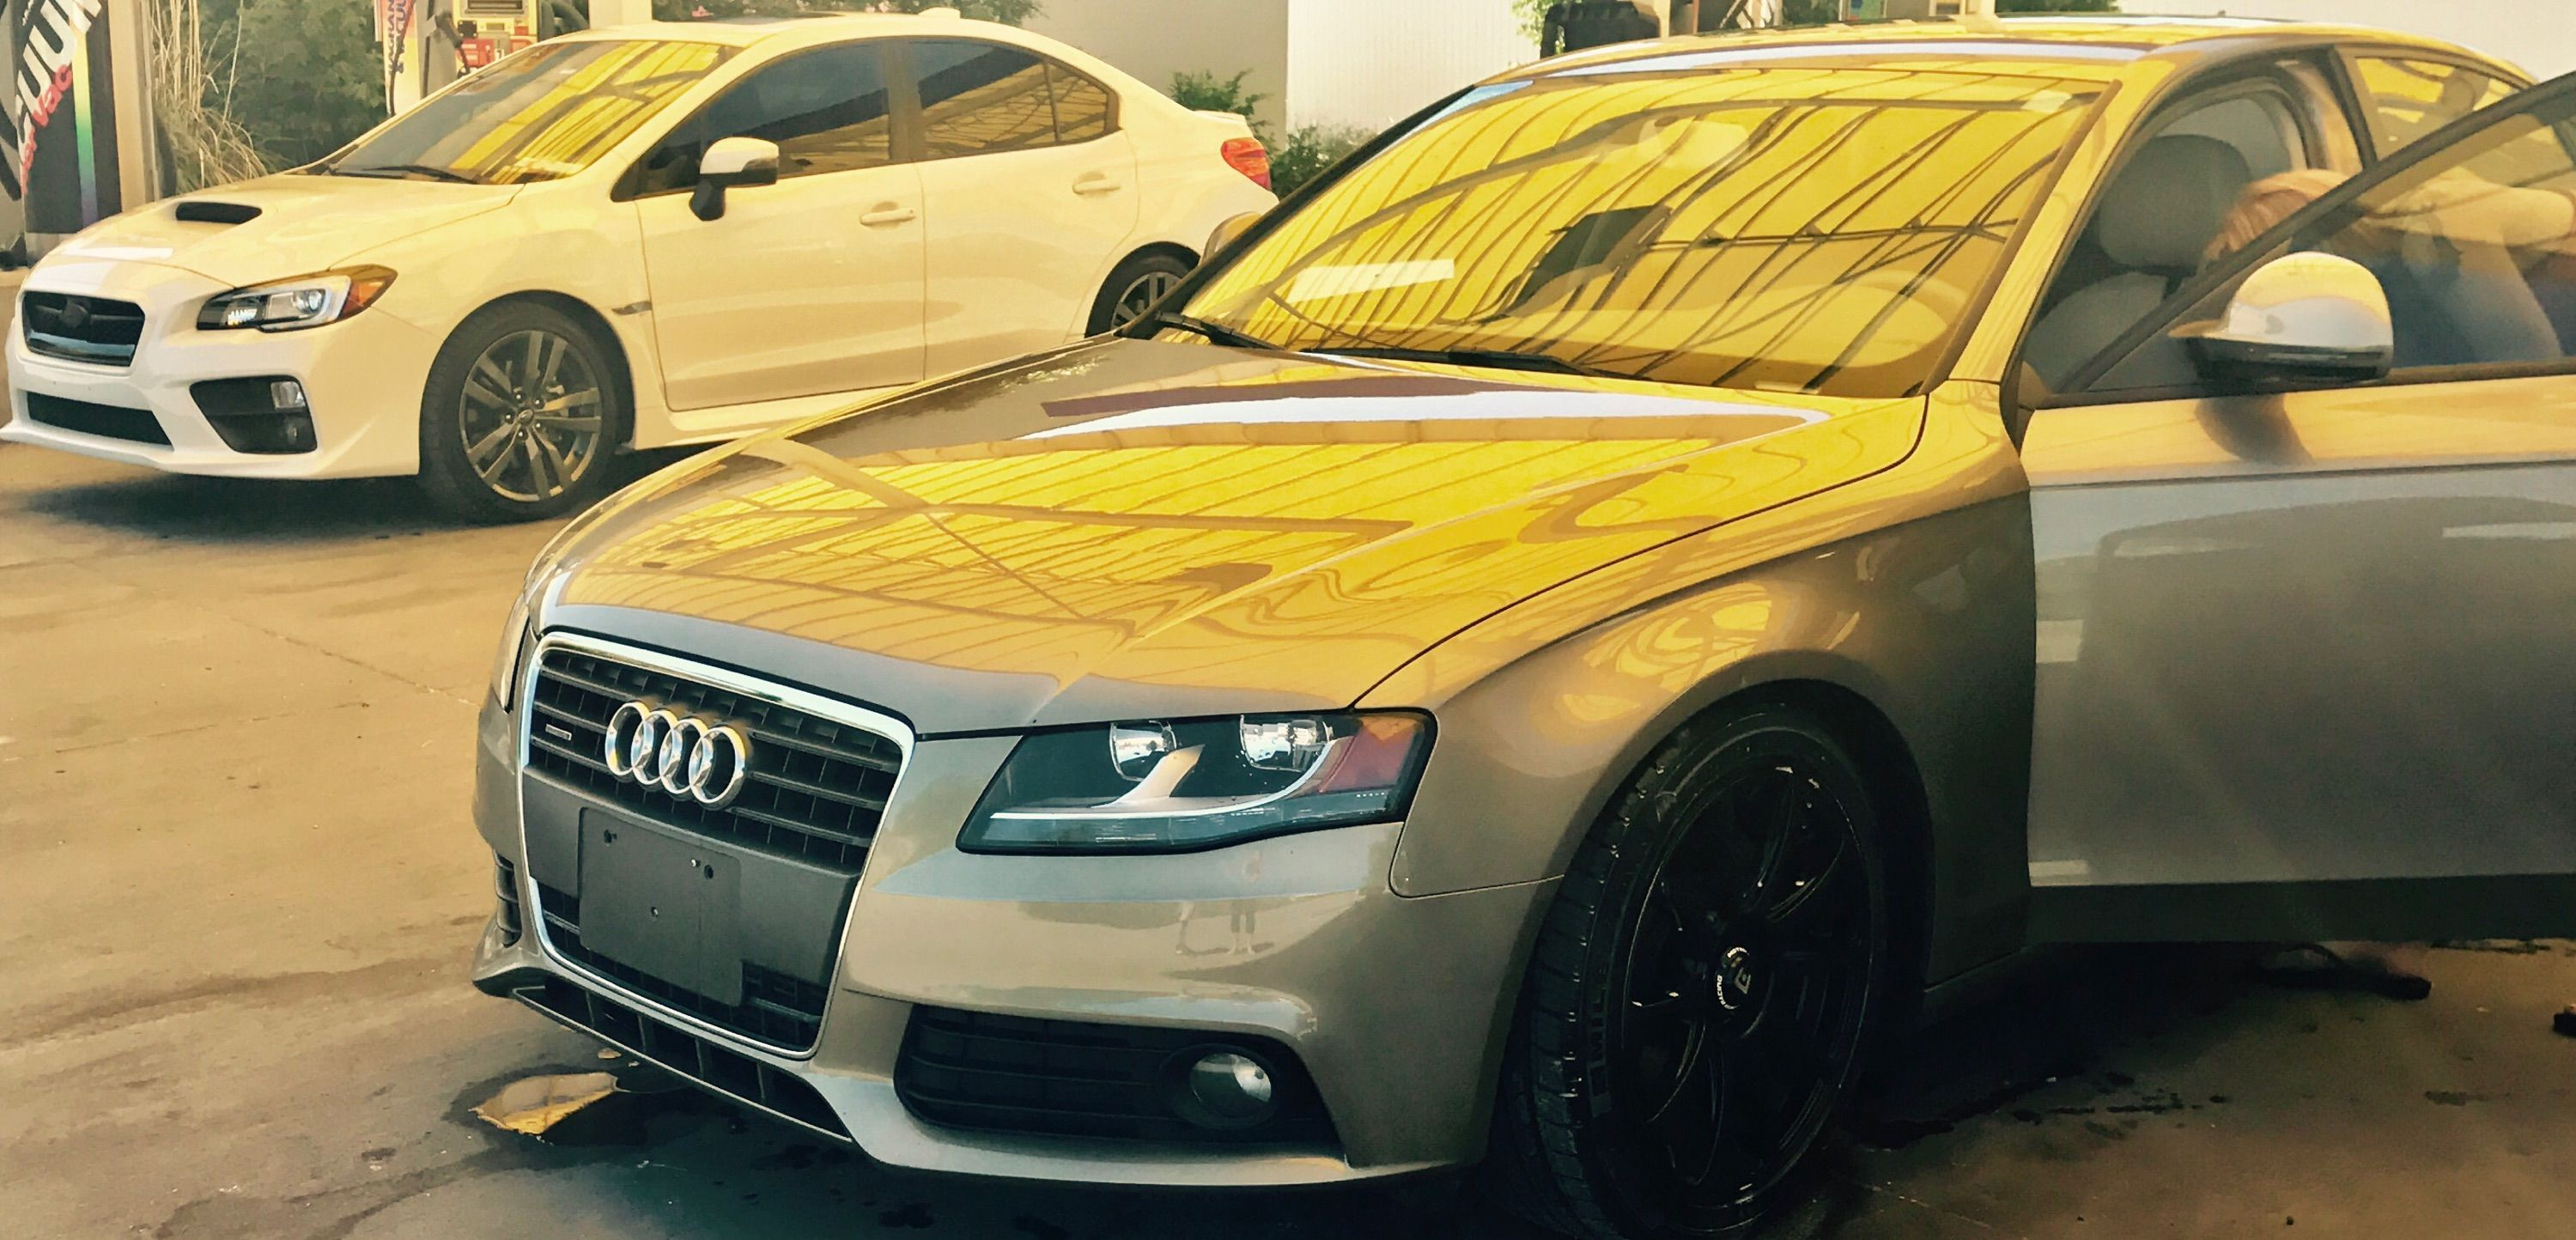 I love my Audi And I love taking it to the car wash